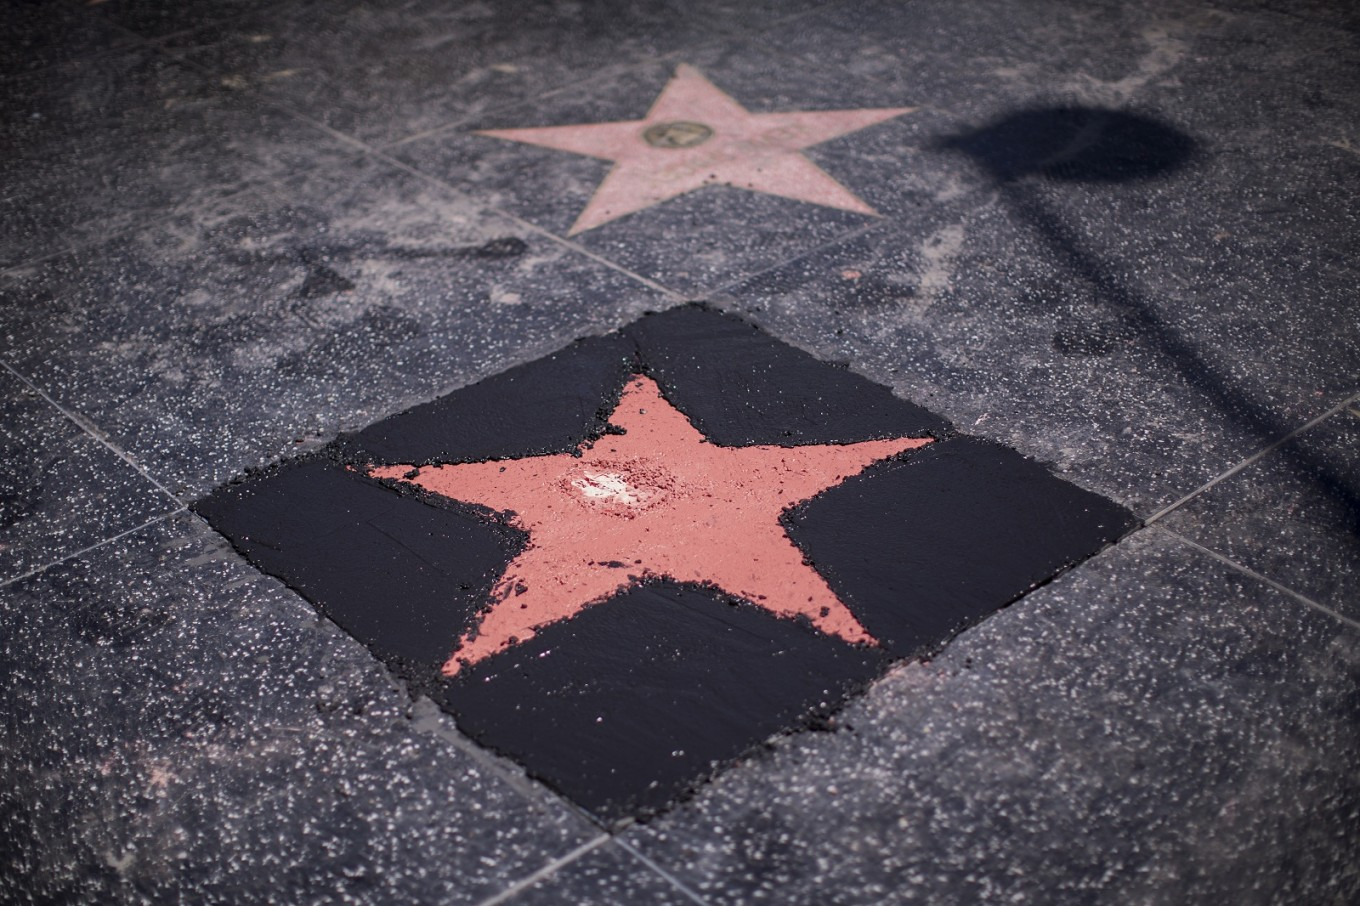 West Hollywood council says Trump's Walk of Fame star must go